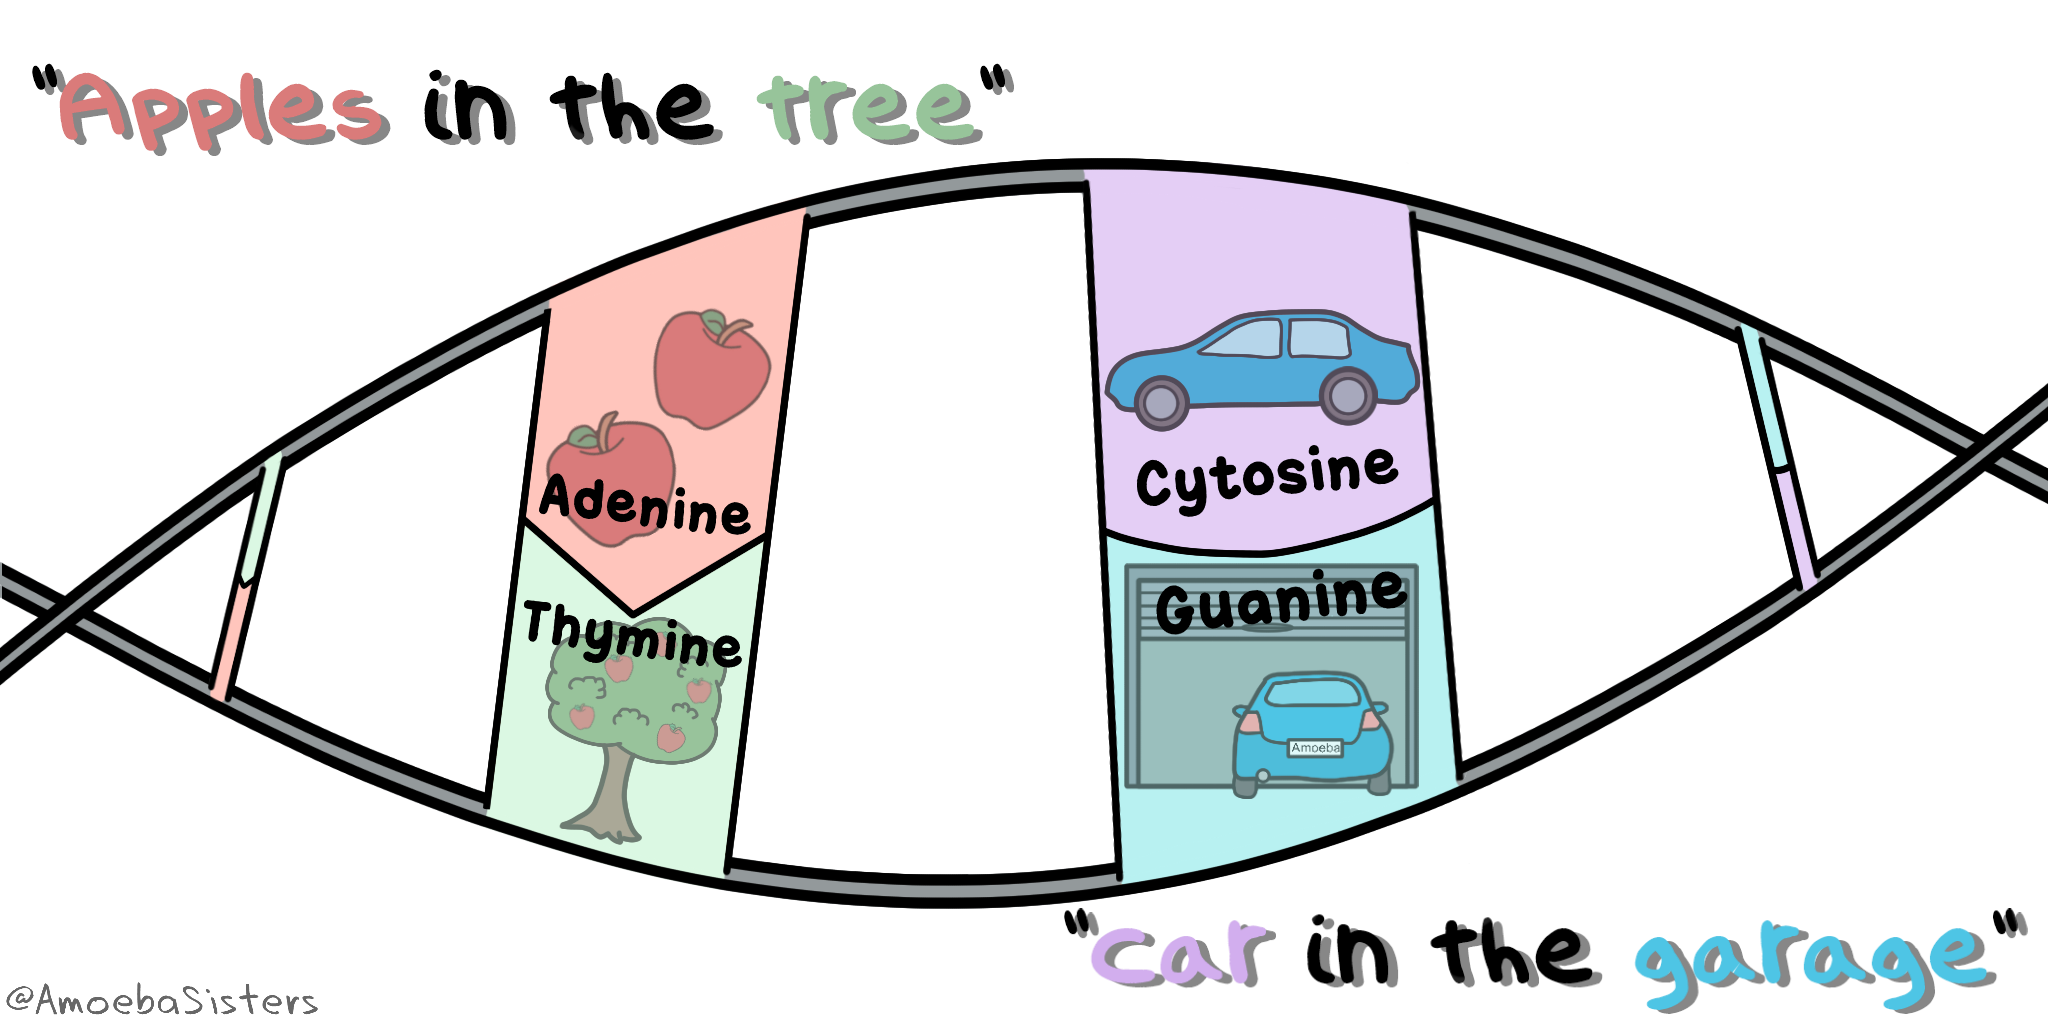 a mnemonic device to remember the dna bases a goes with t c goes